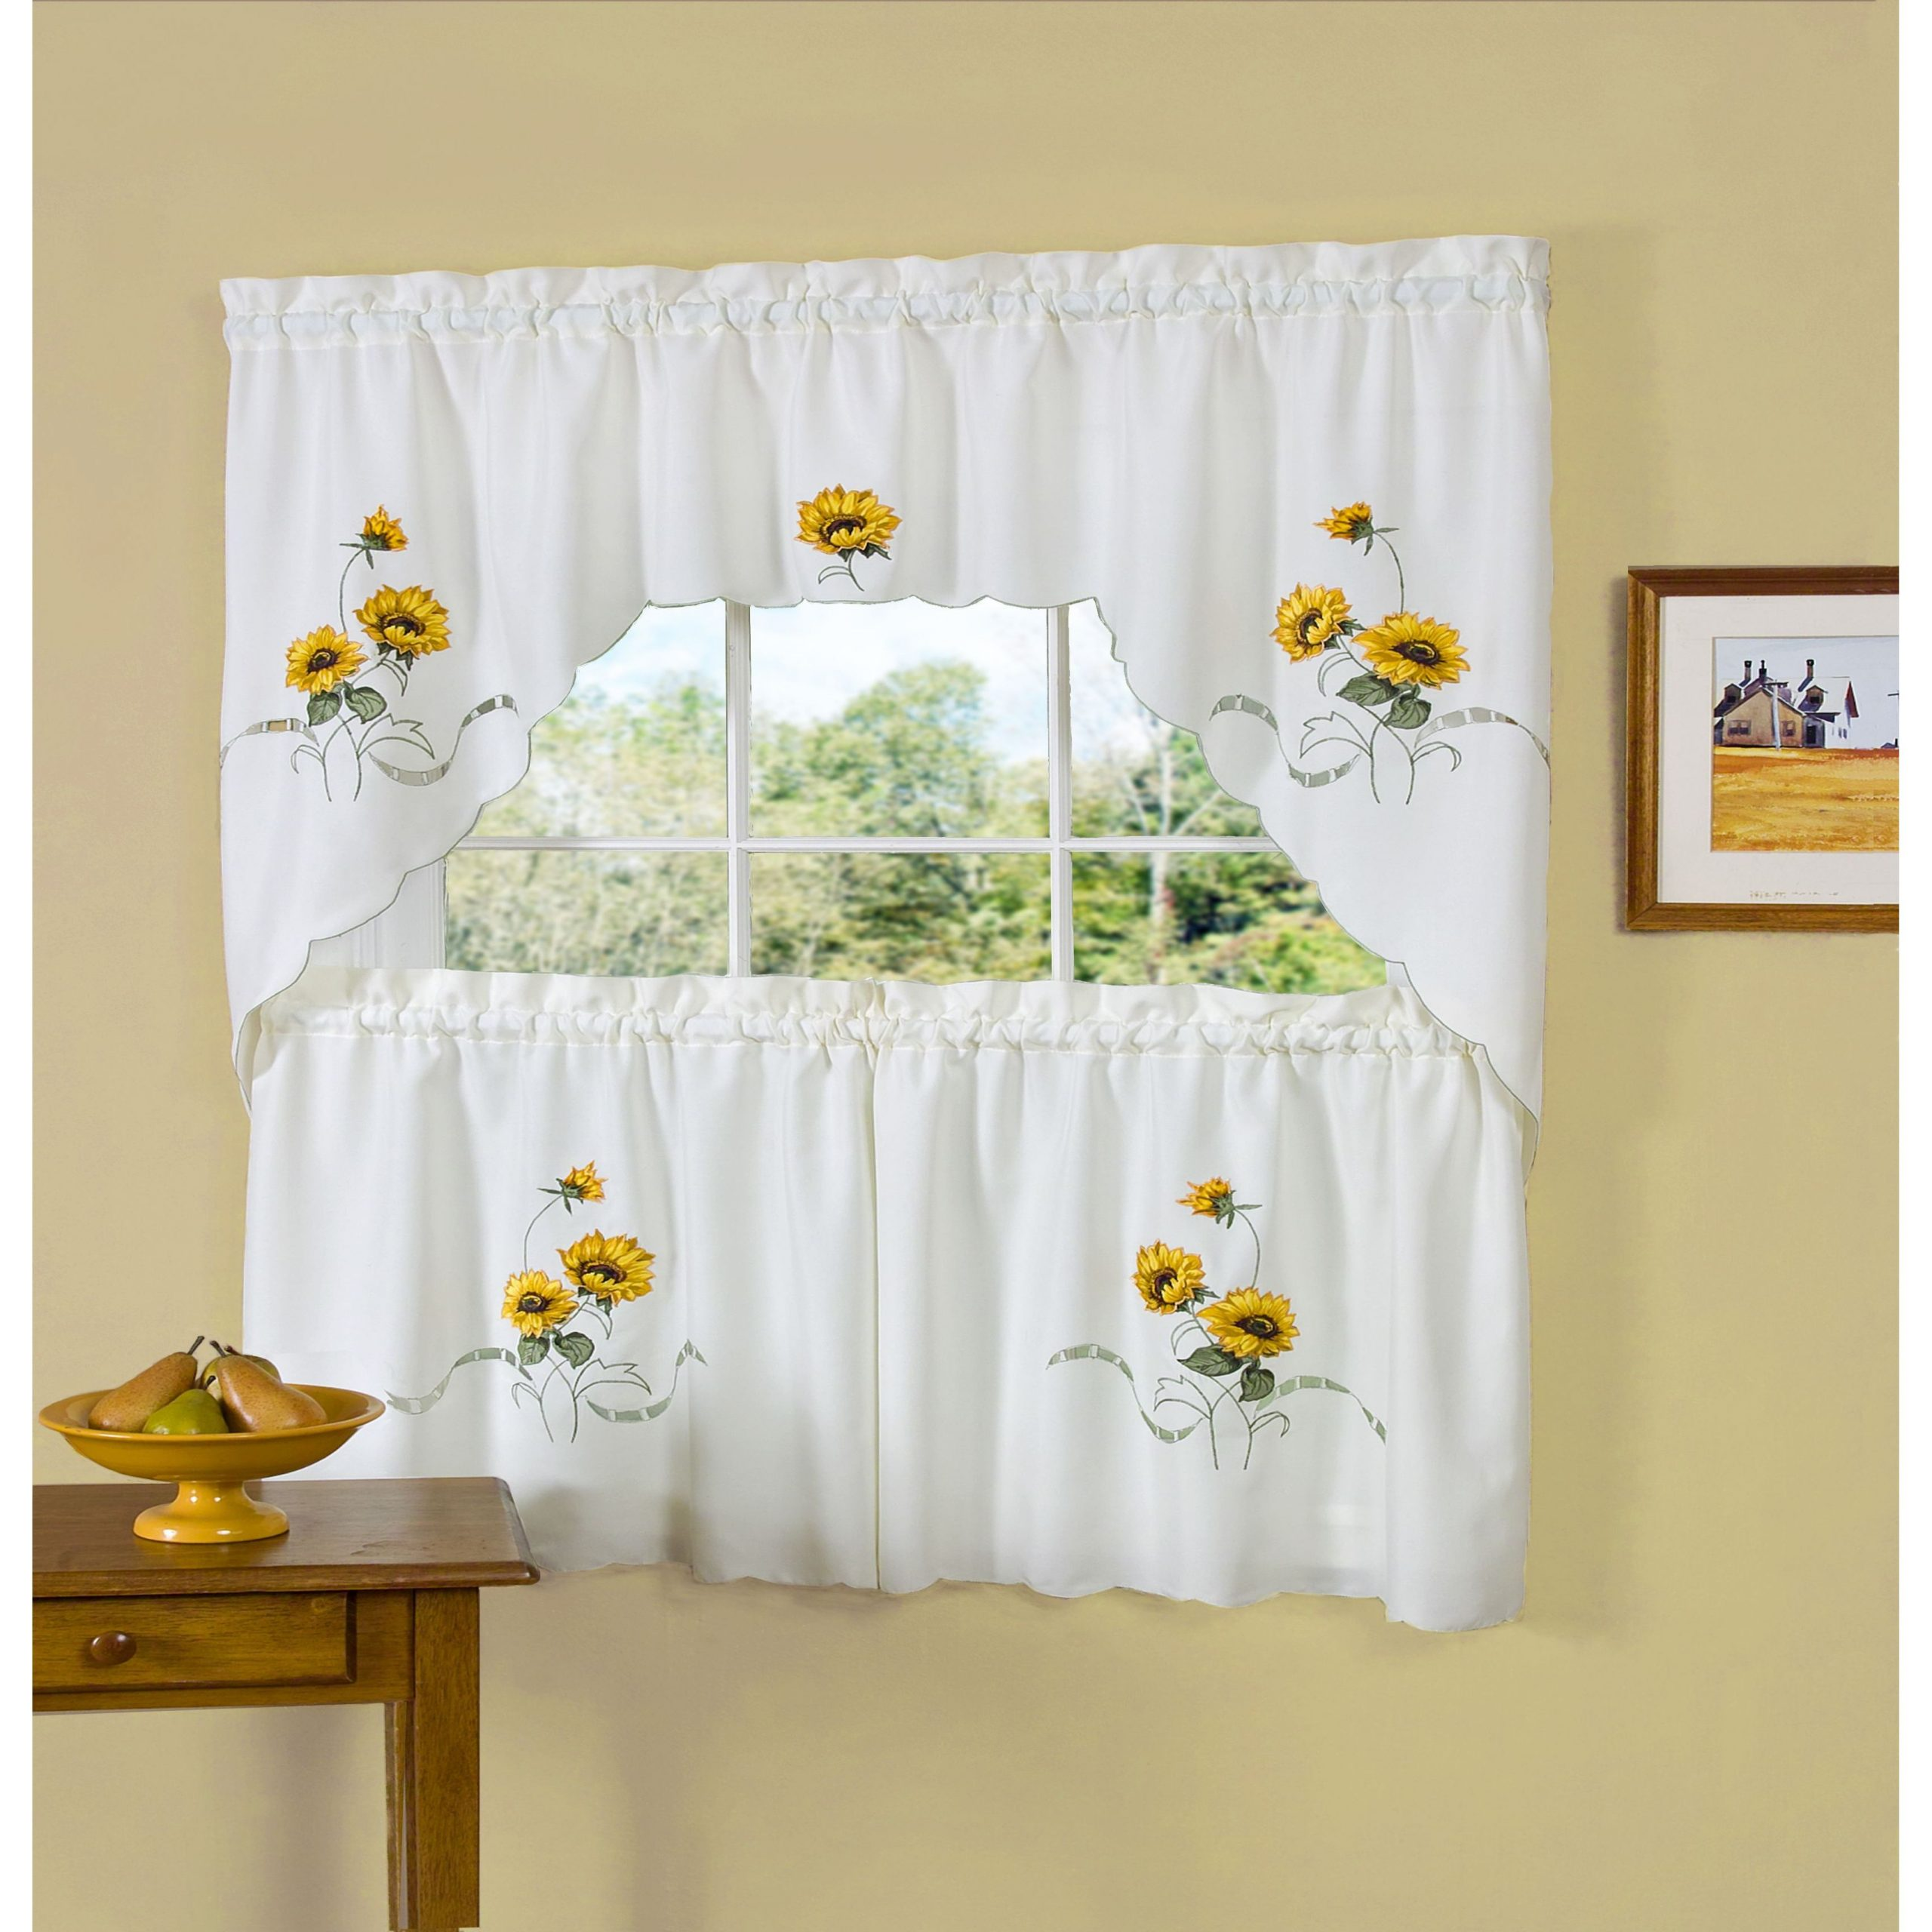 Well Known Achim Home Furnishings Lemon Drop Tier And Valance Window Pertaining To Lemon Drop Tier And Valance Window Curtain Sets (View 3 of 20)